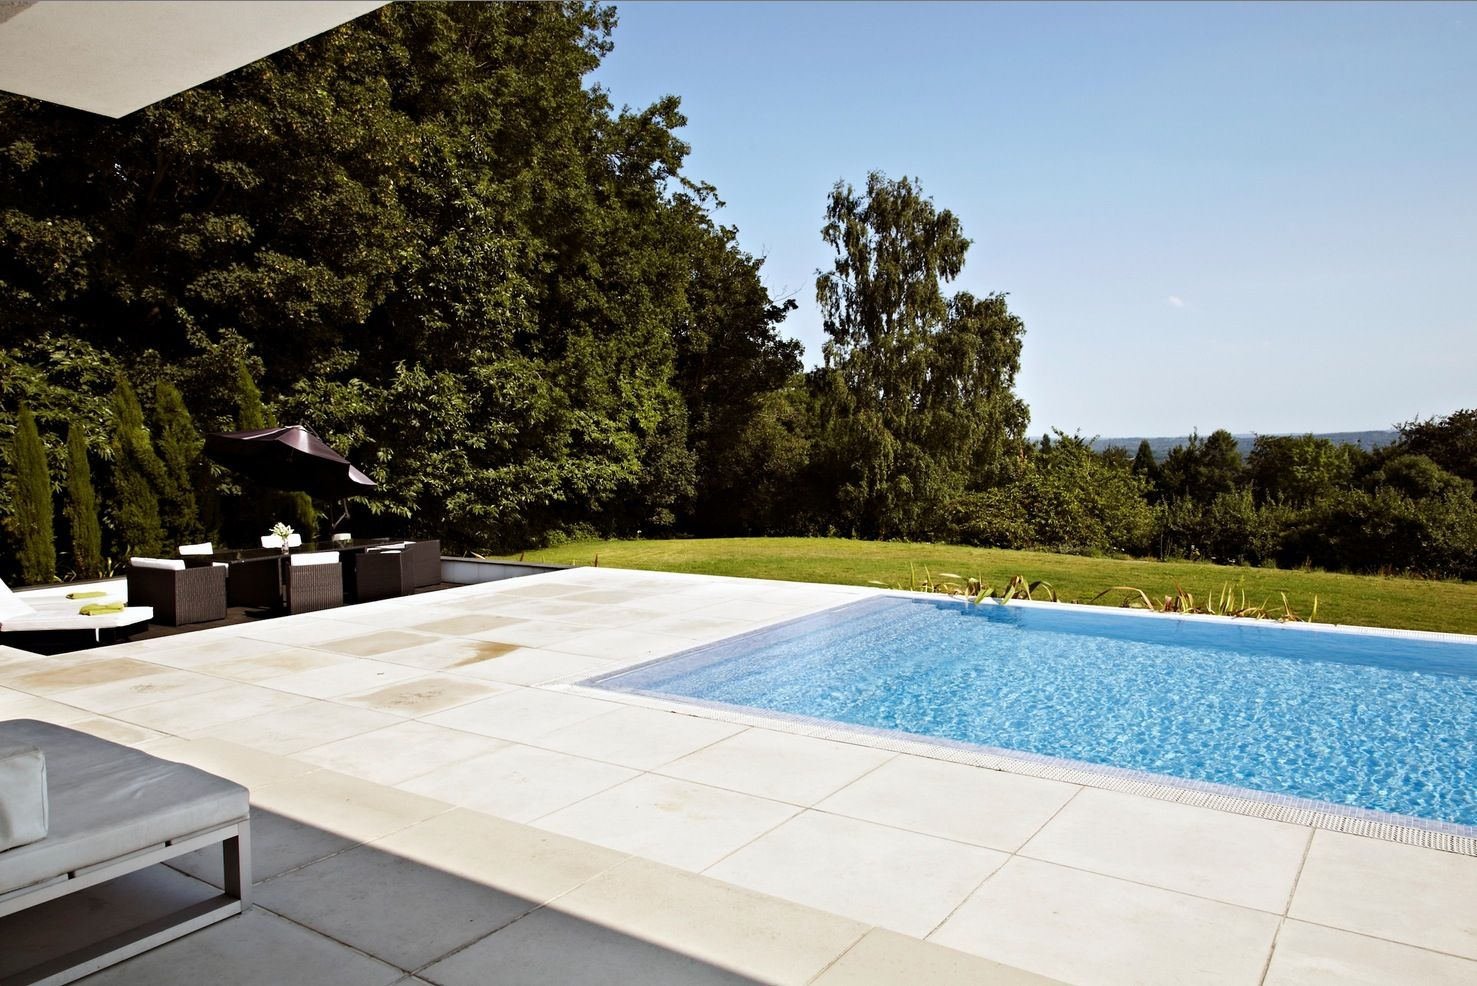 Superior Backyard Infinity Pool And Patio To Overlook My Horse Field